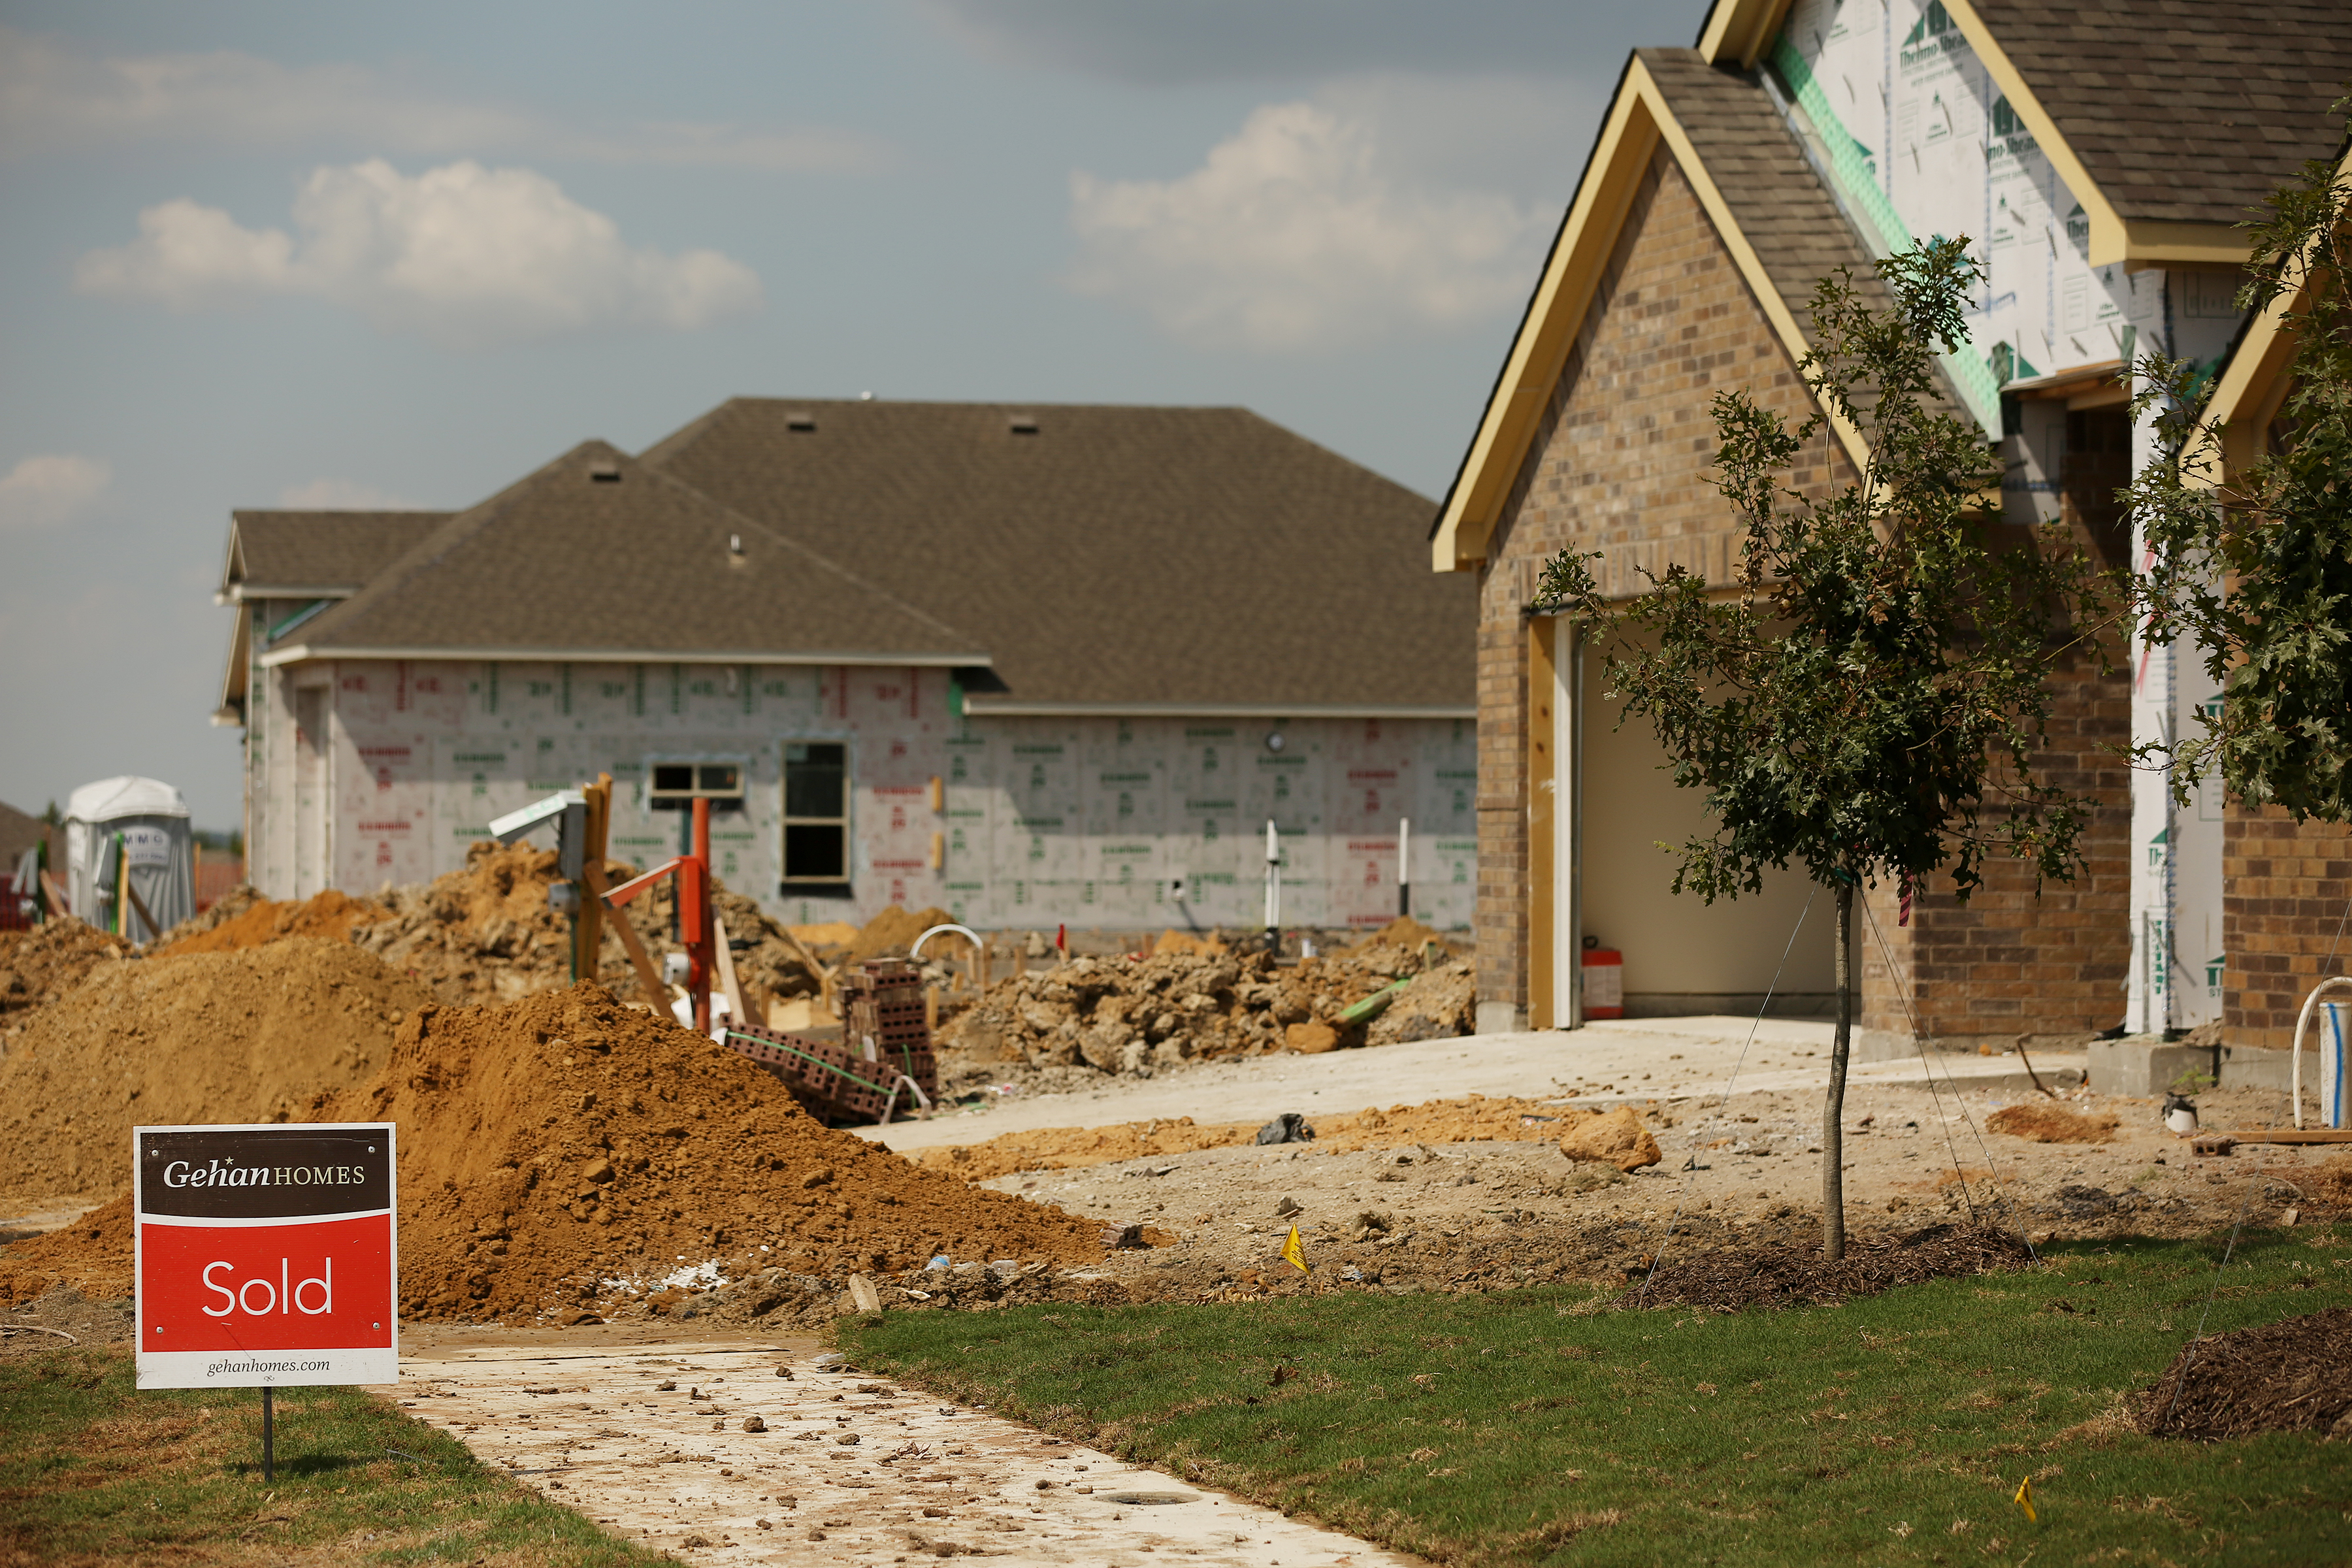 D FW Homebuilders Offering More Affordable New Models To Millennials | Real  Estate | Dallas News